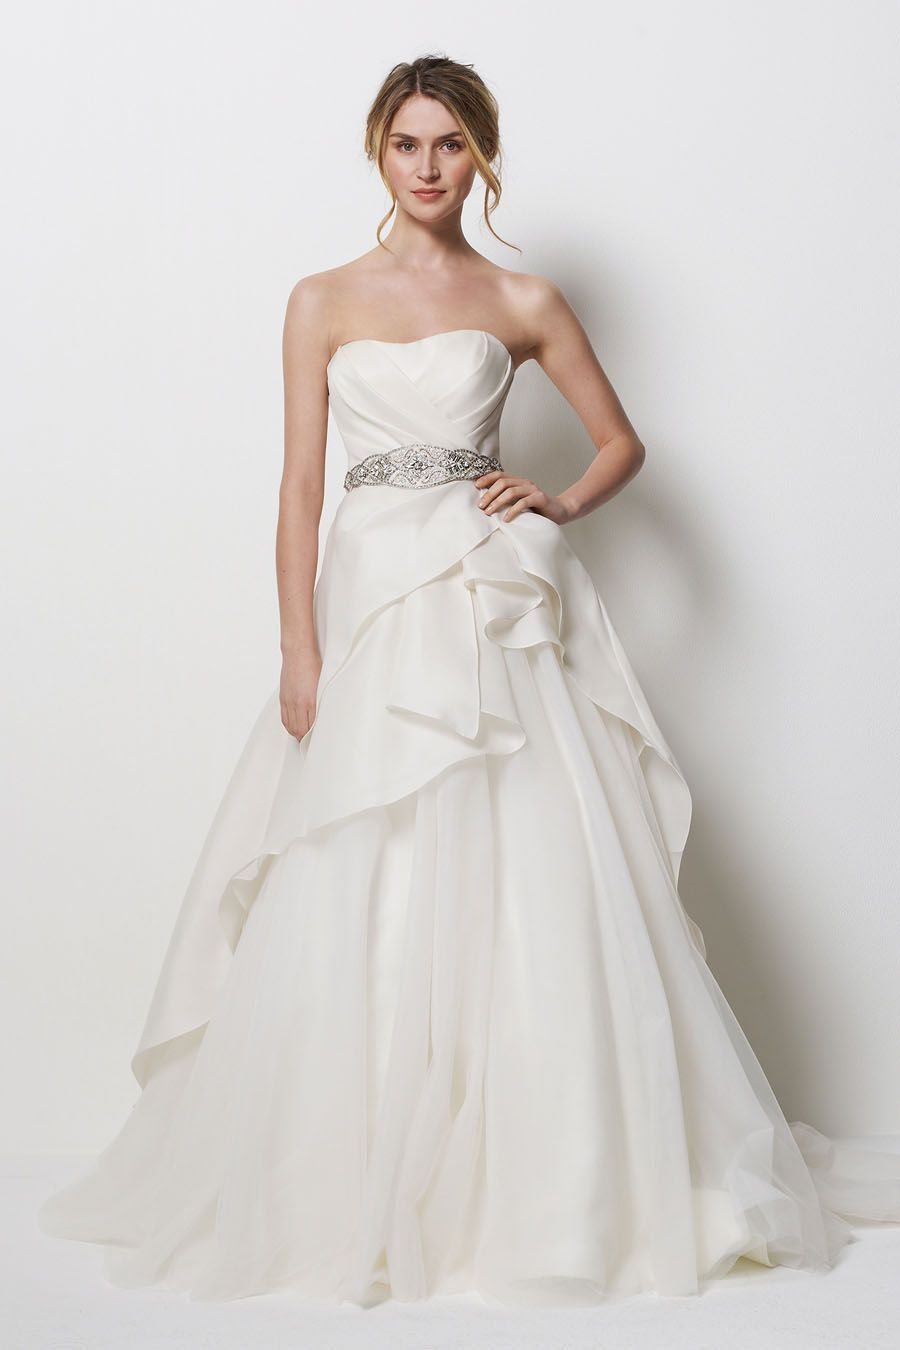 The romantic A-line strapless scoop neck white satin and chiffon floor-length chapel train wedding dress with the natural ruches bodice and the beading sash matching the puff skirt